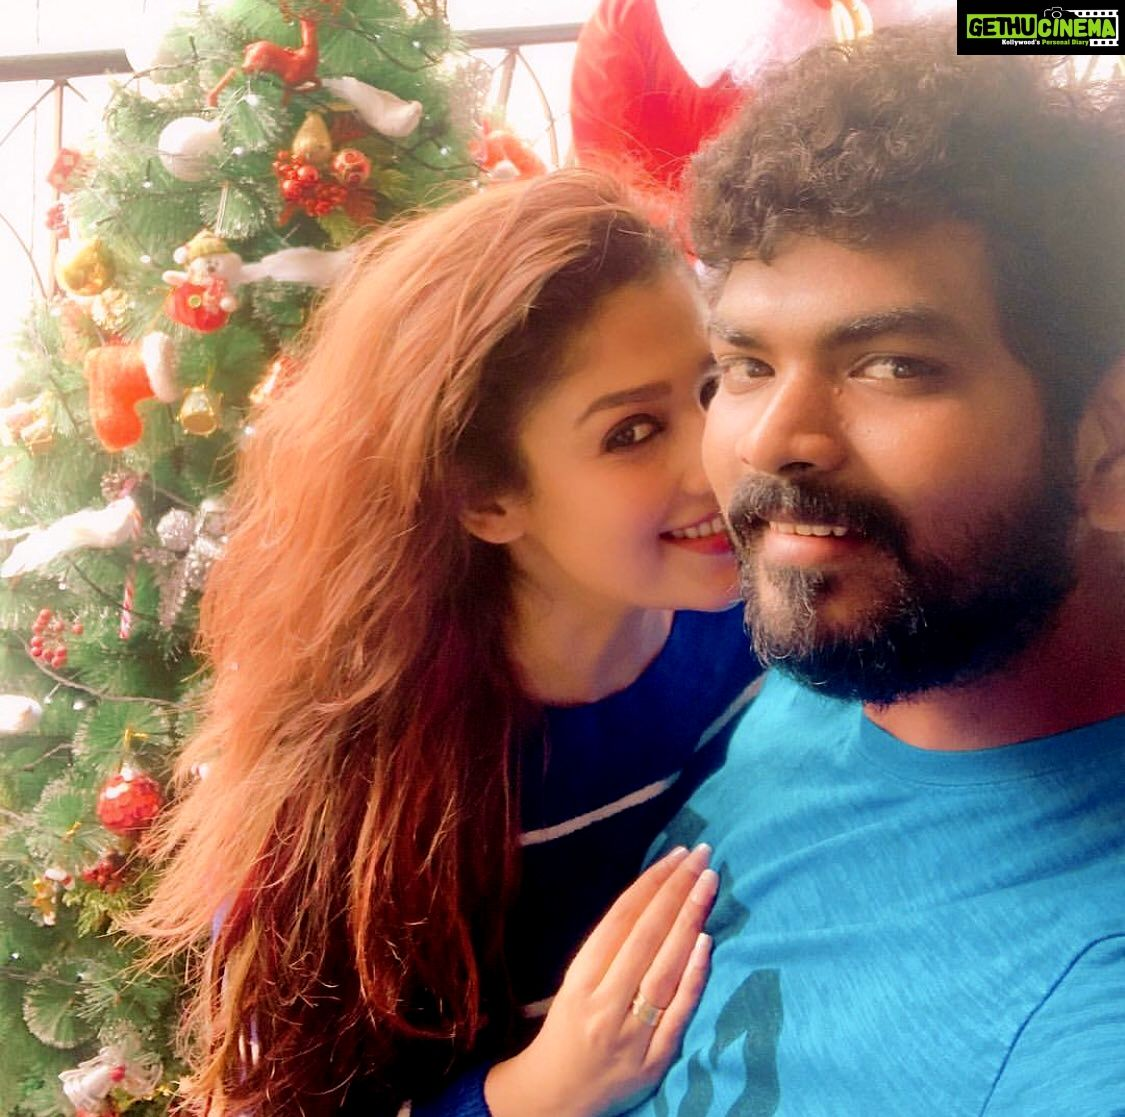 Nayanthara 2020 Christmas Pictures Actress Nayanthara & Vignesh Shivan Latest HD Pictures   Gethu